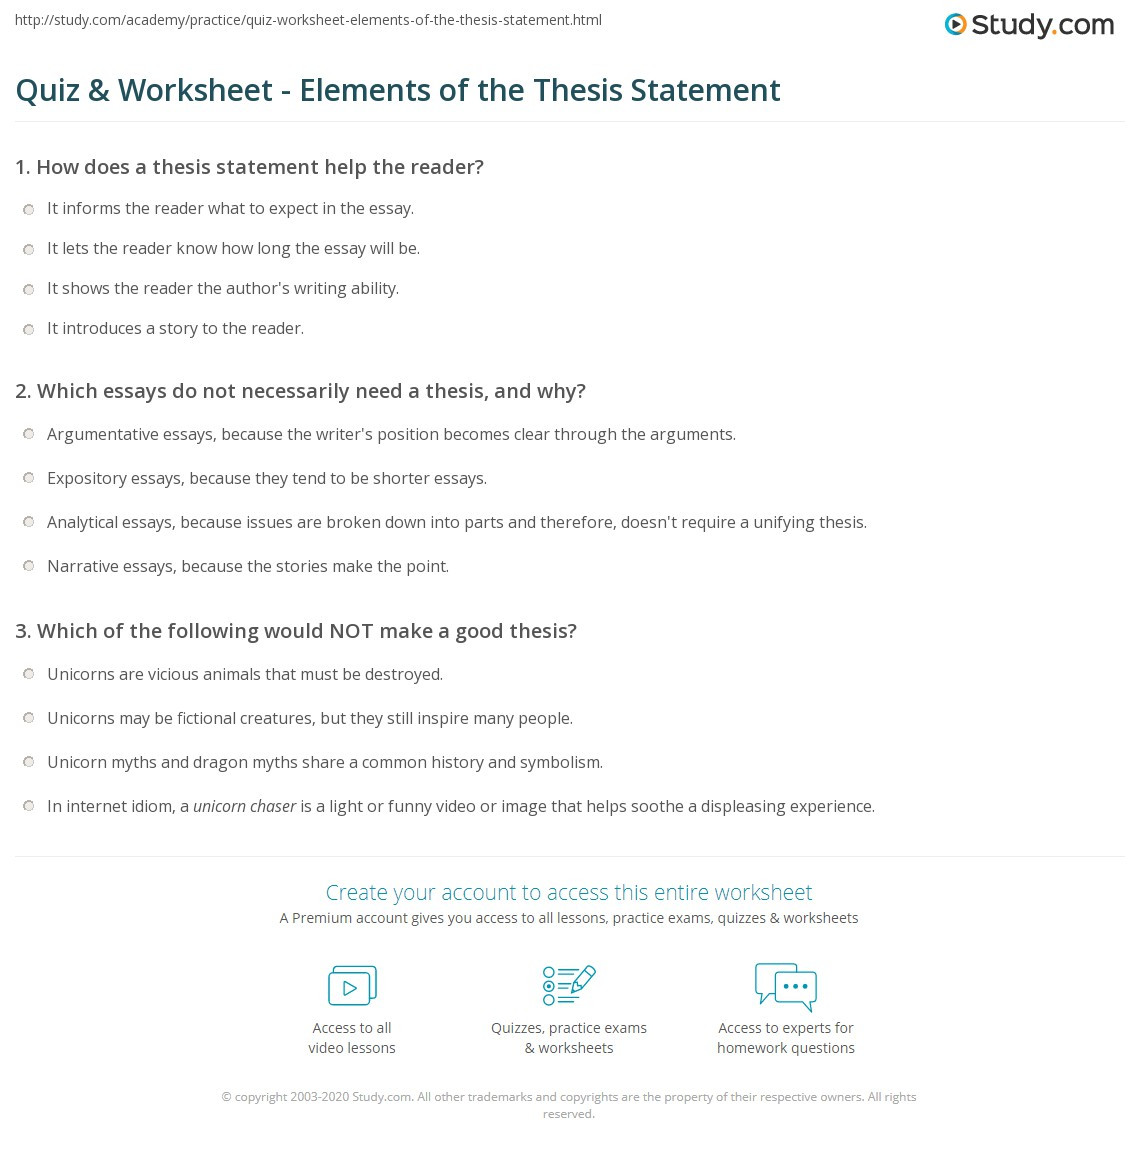 Thesis Statement Worksheet High School Quiz & Worksheet Elements Of the thesis Statement